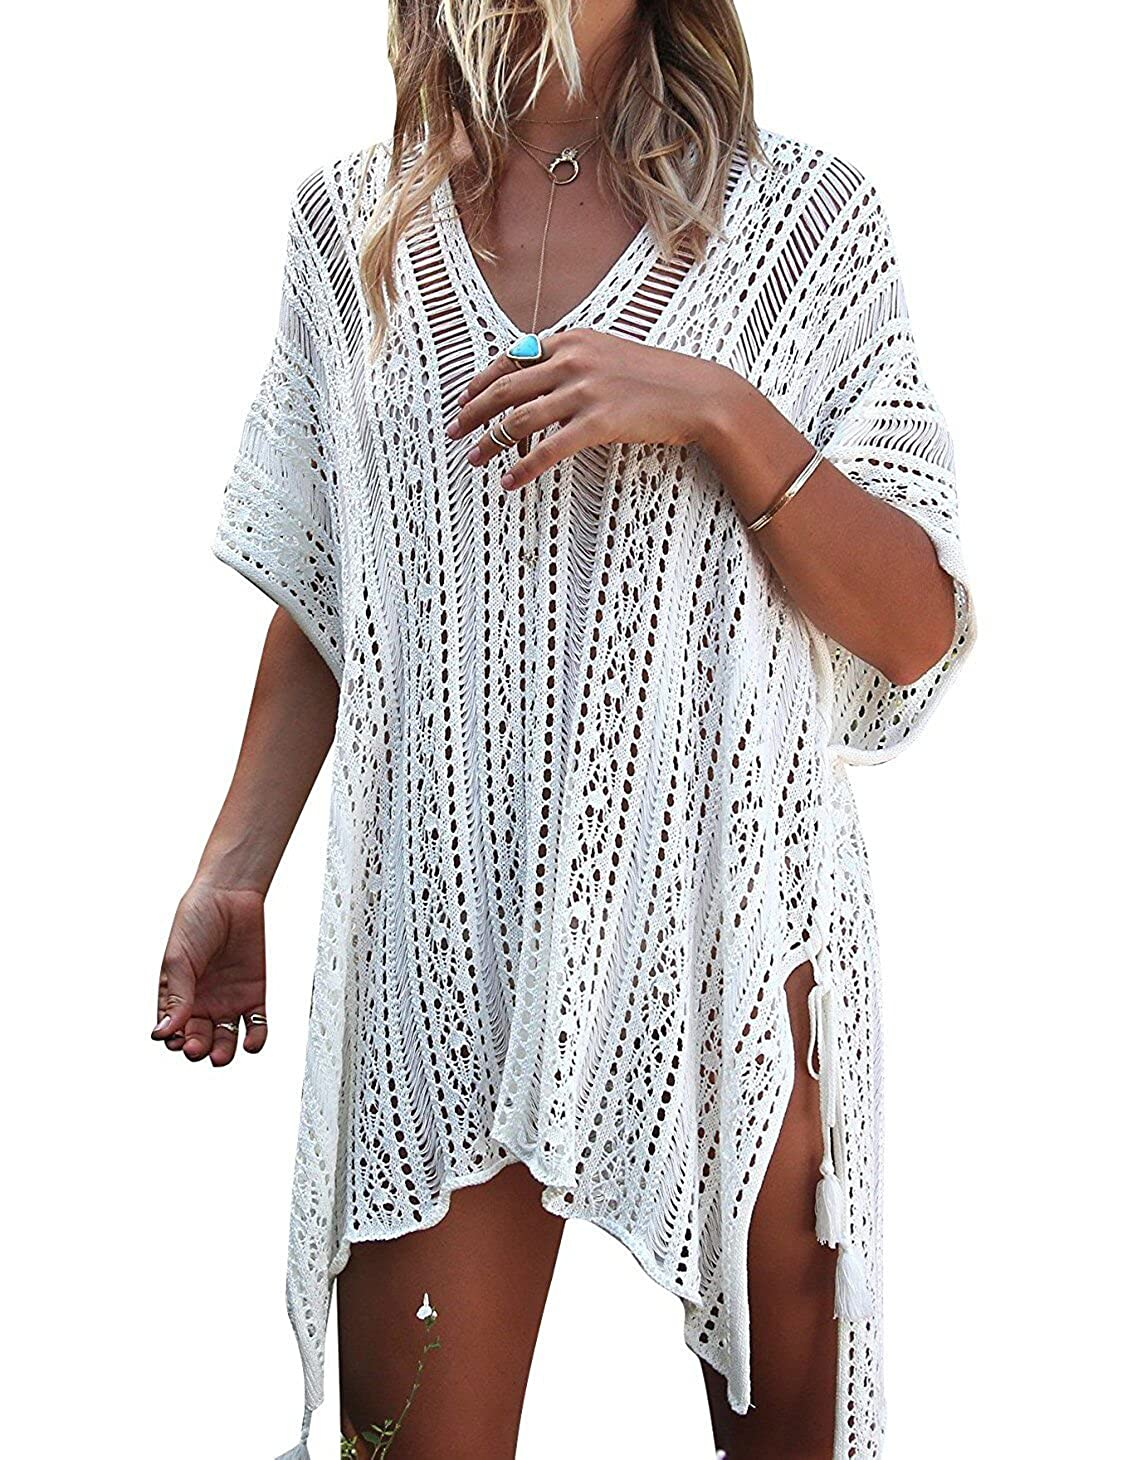 LAVENCHY Swimsuit Bikini Bathing Swimwear Crochet Cover up